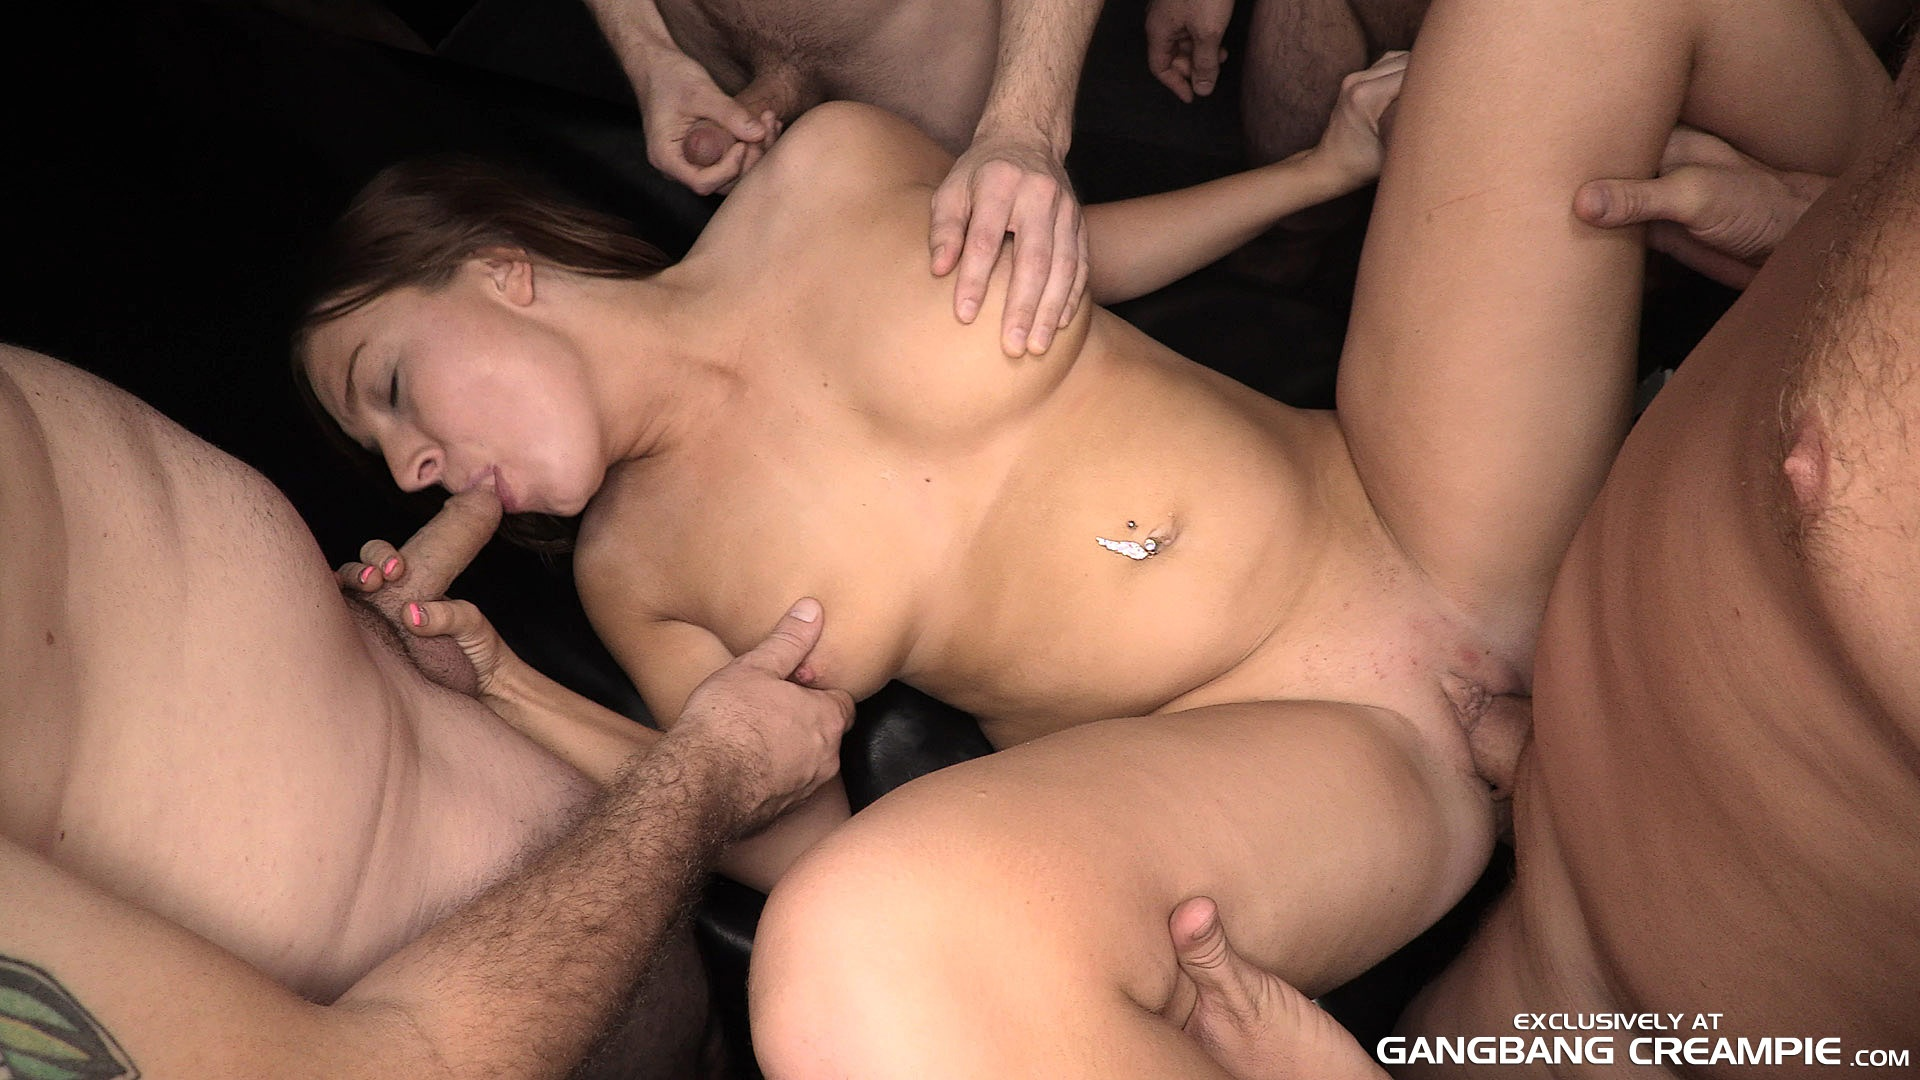 Creampie cunt gangbangs galleries